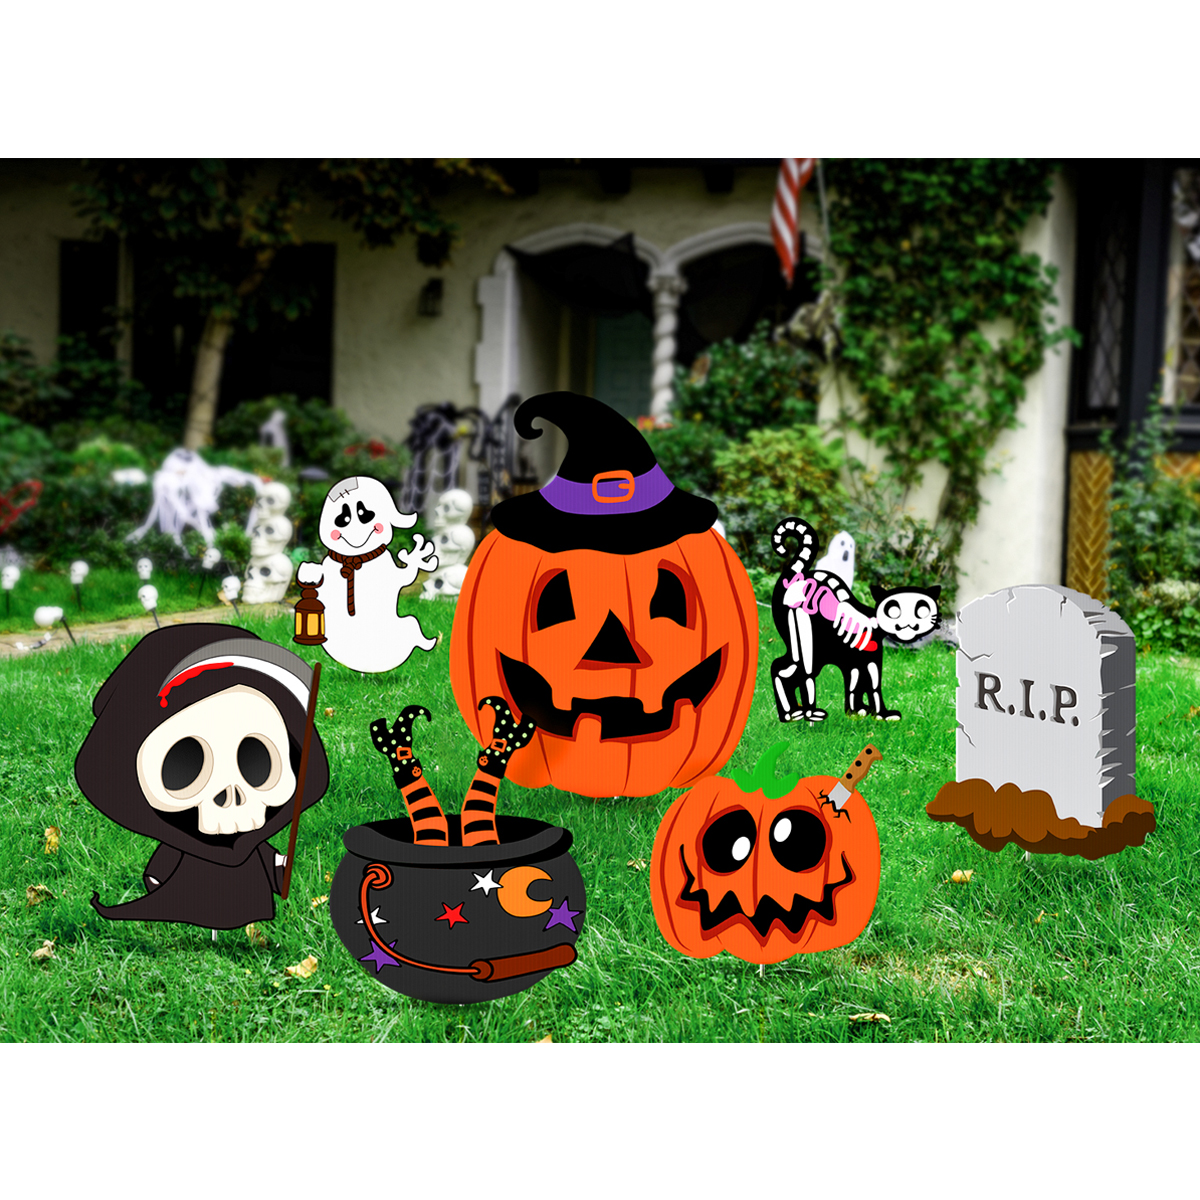 Halloween Yard.Us 18 21 36 Off Unomor 7pcs Halloween Yard Stakes Set Outdoor Lawn Decorations Garden Landscape Decoration Holiday Party Halloween Scary Items In